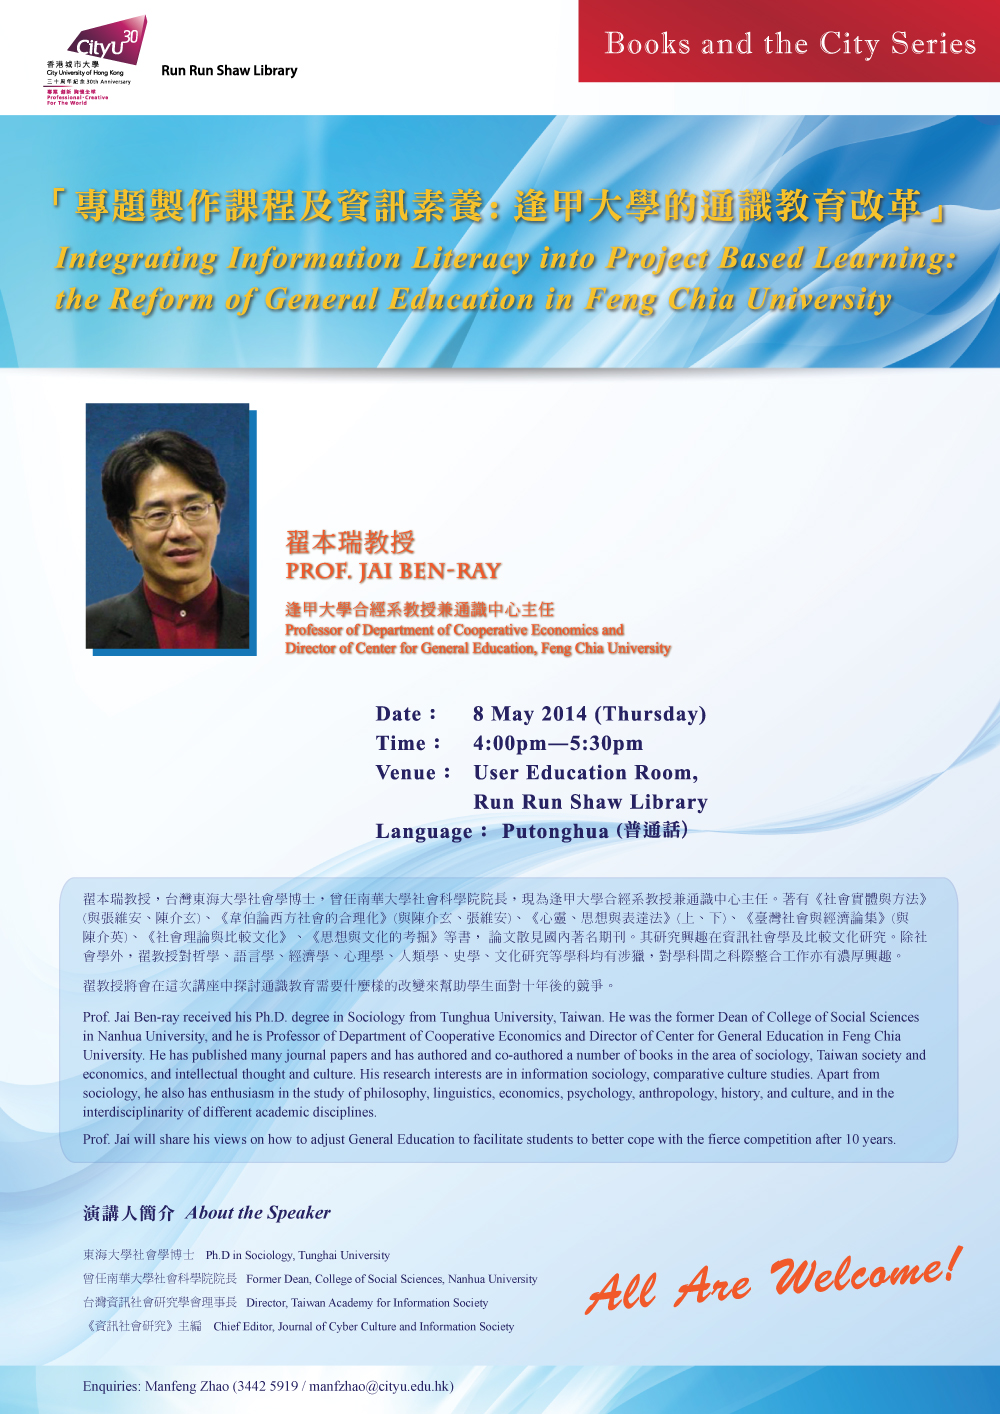 Integrating Information Literacy into Project Based Learning: the Reform of General Education in Feng Chia University 專題製作課程及資訊素養︰逢甲大學的通識教育改革 